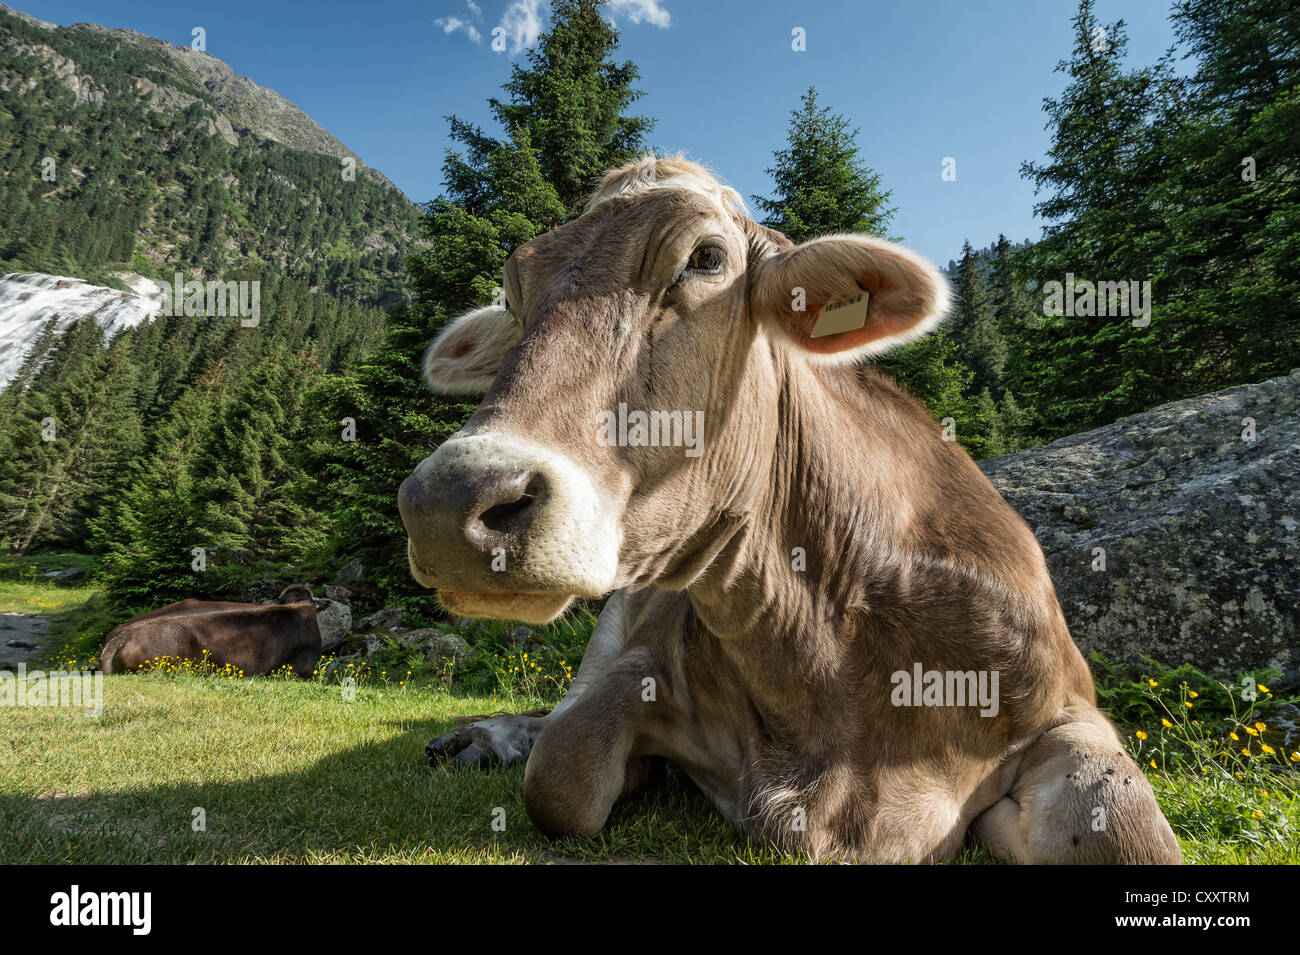 Tyrolean Brown Cattle, cow without horns ruminating, Grawa Alm, mountain pasture, Stubai Valley, Tyrol, Austria, - Stock Image